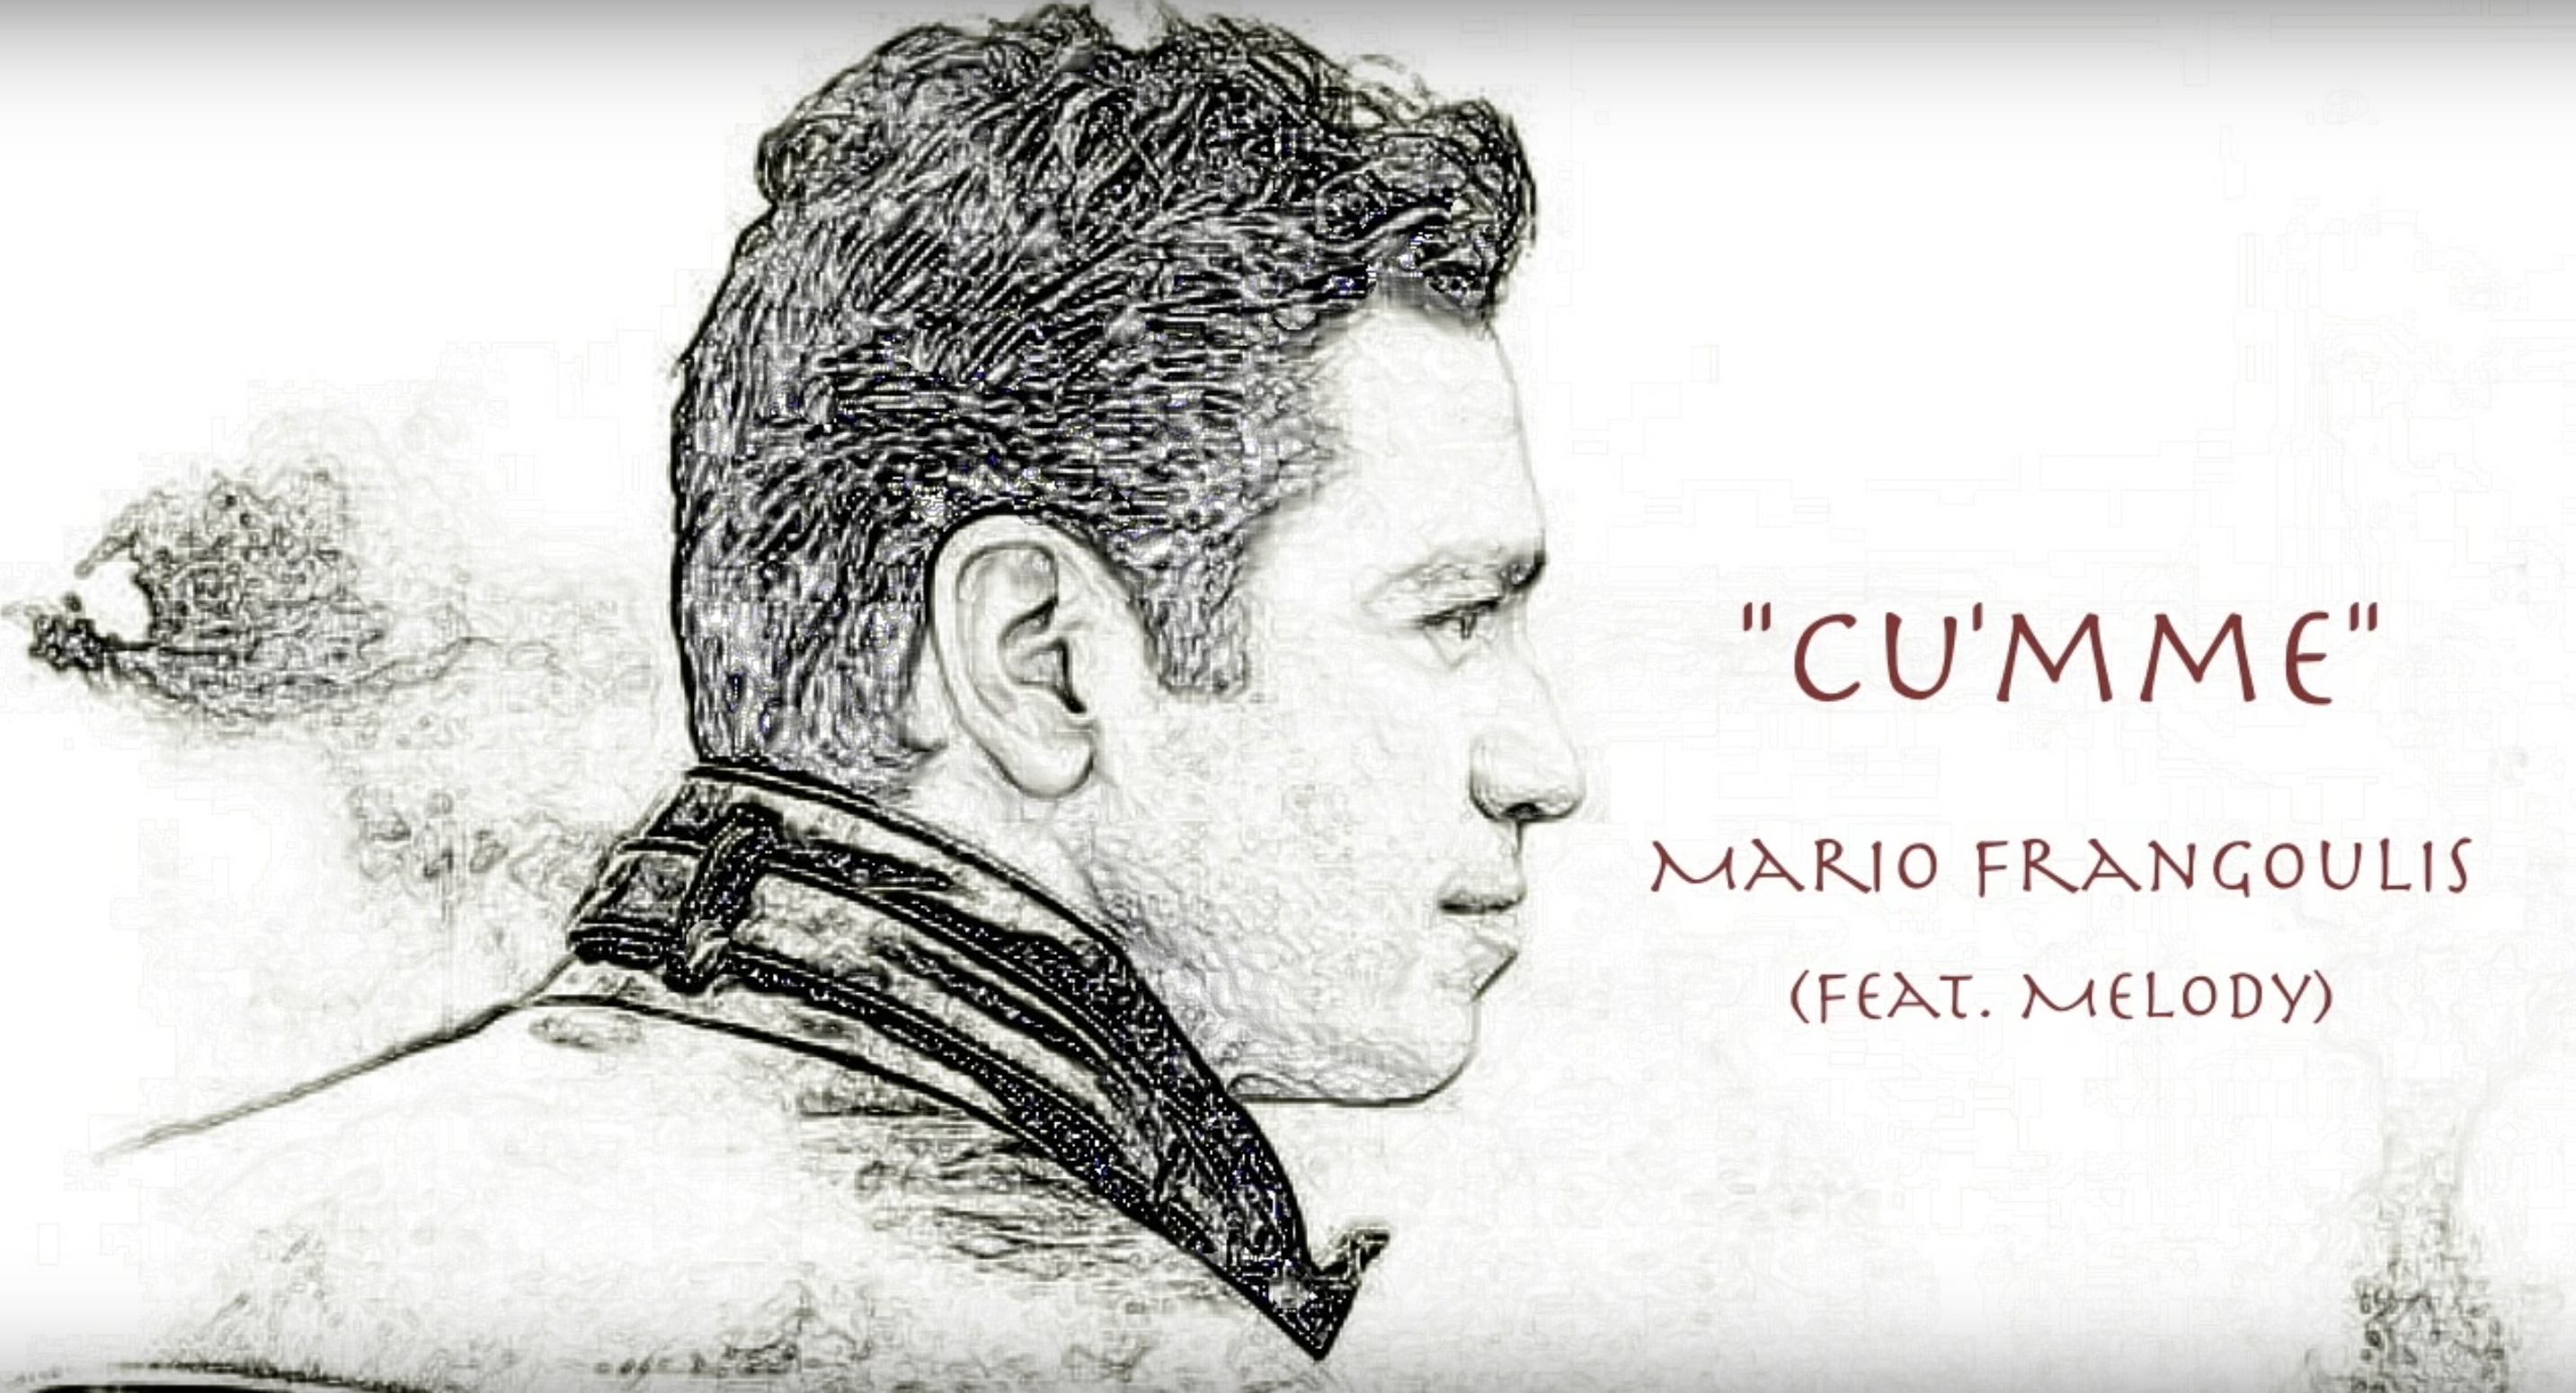 Cu´mme Mario Frangoulis Ft. Melody